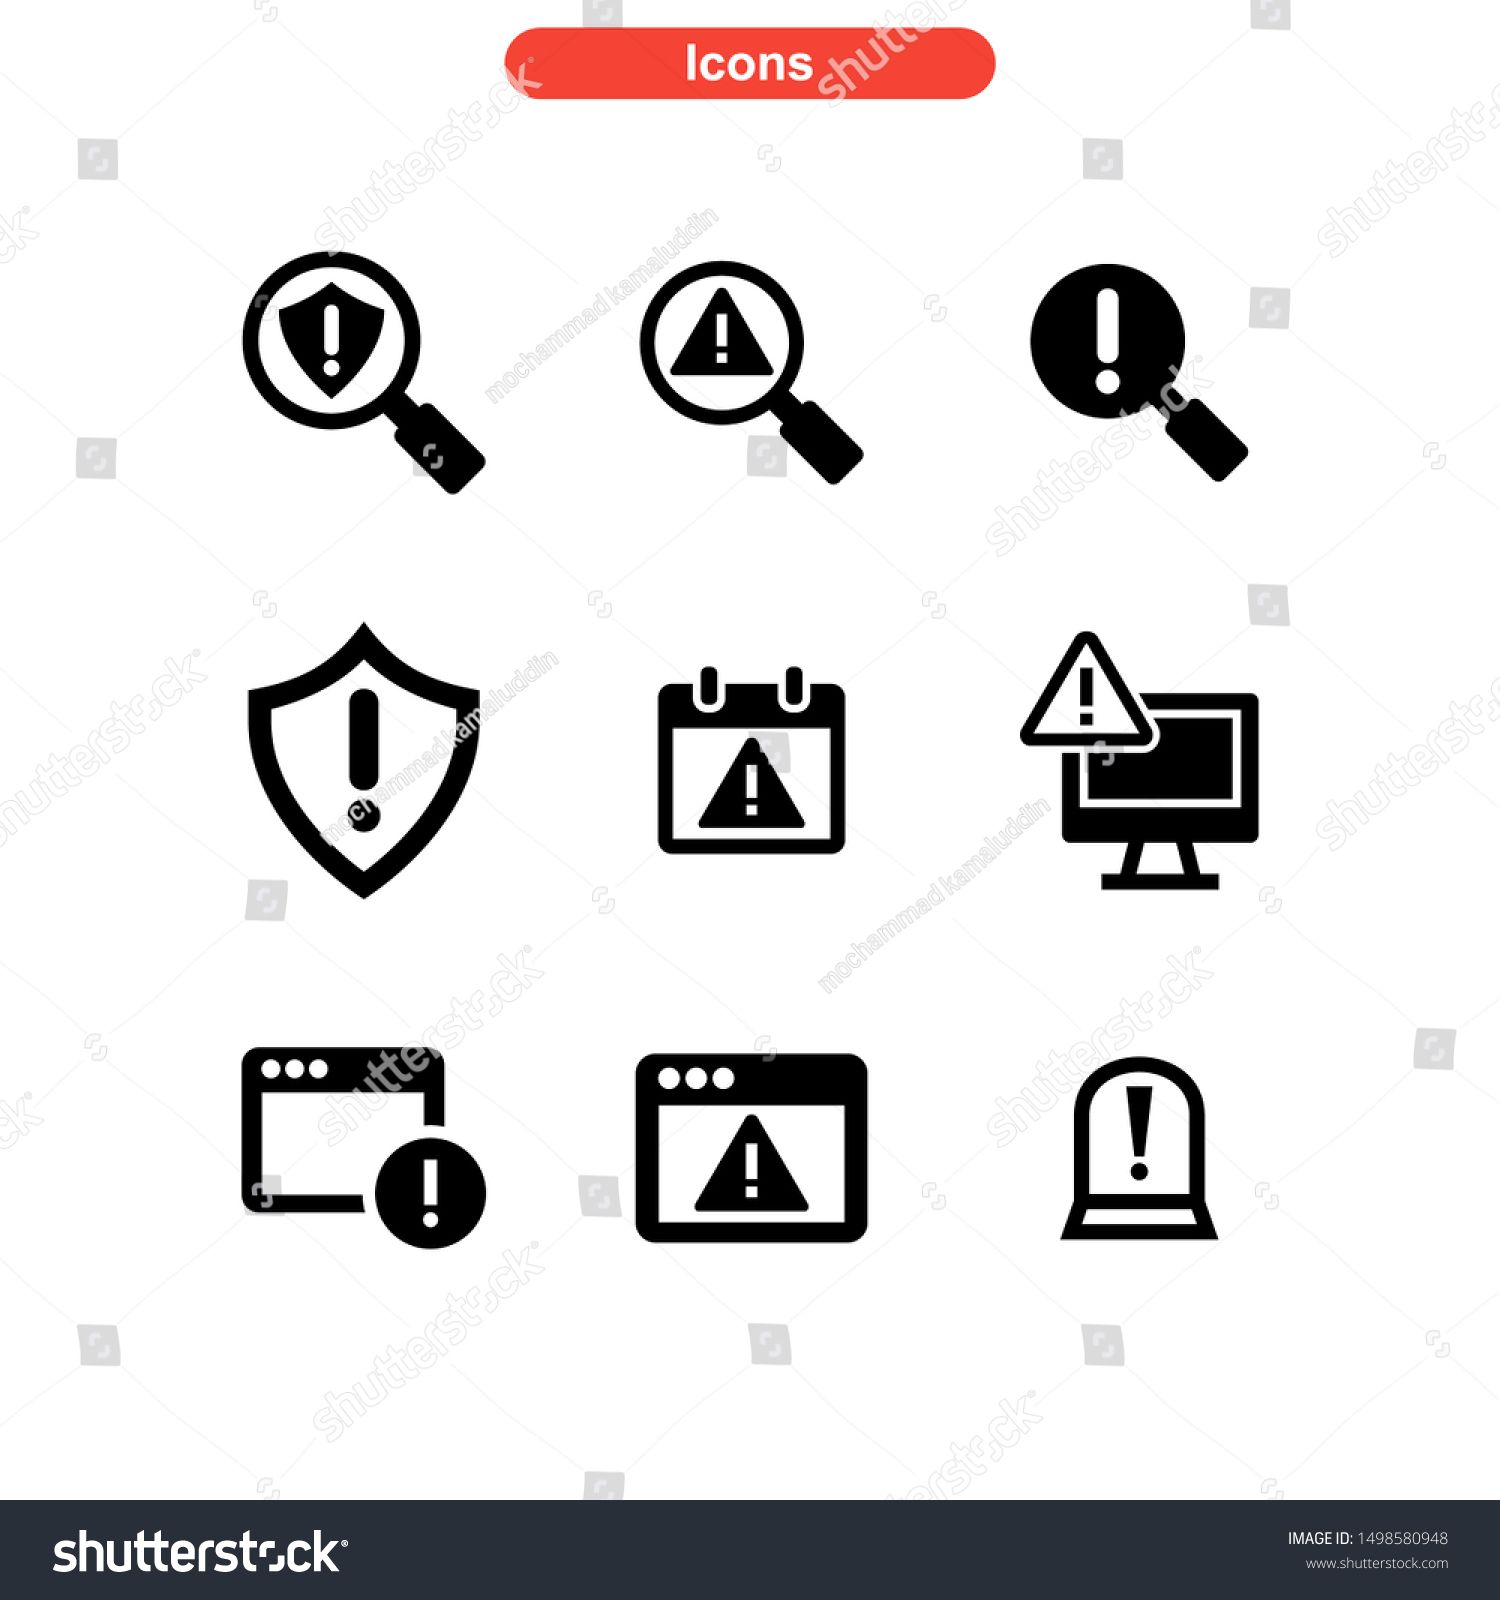 alert icon isolated sign symbol vector illustration